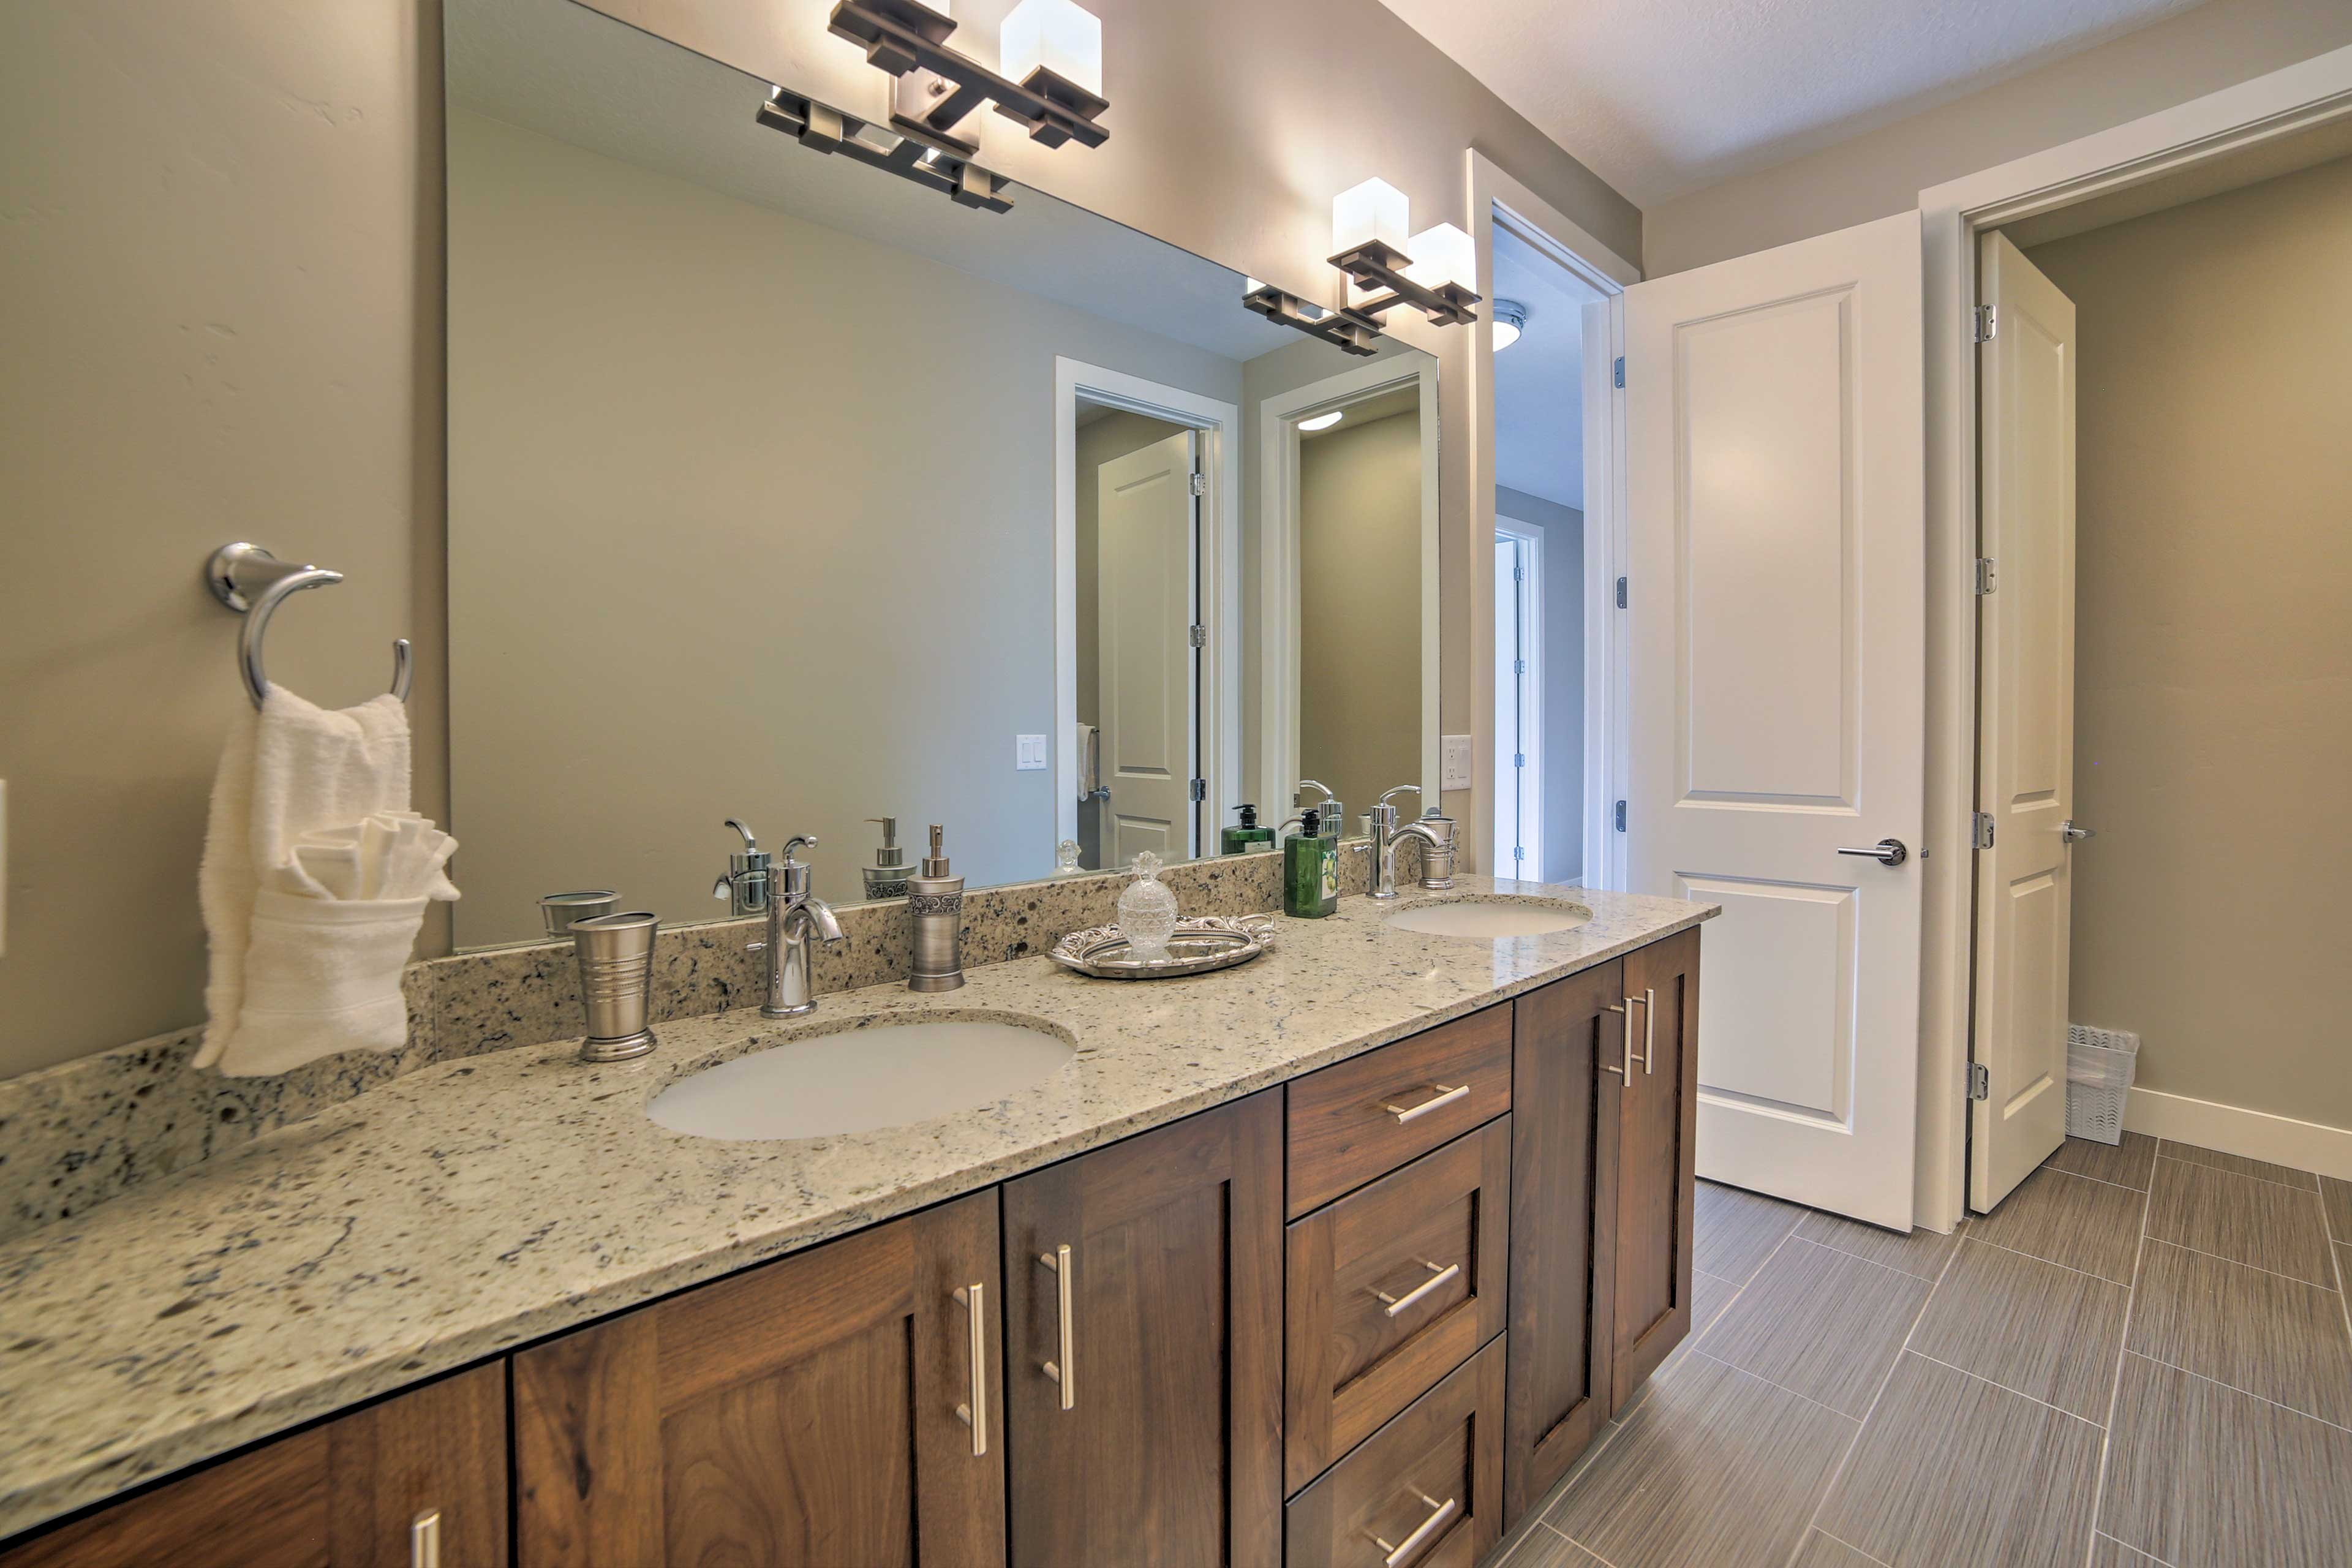 The Jack-and-Jill bath is shared with the second master bedroom.